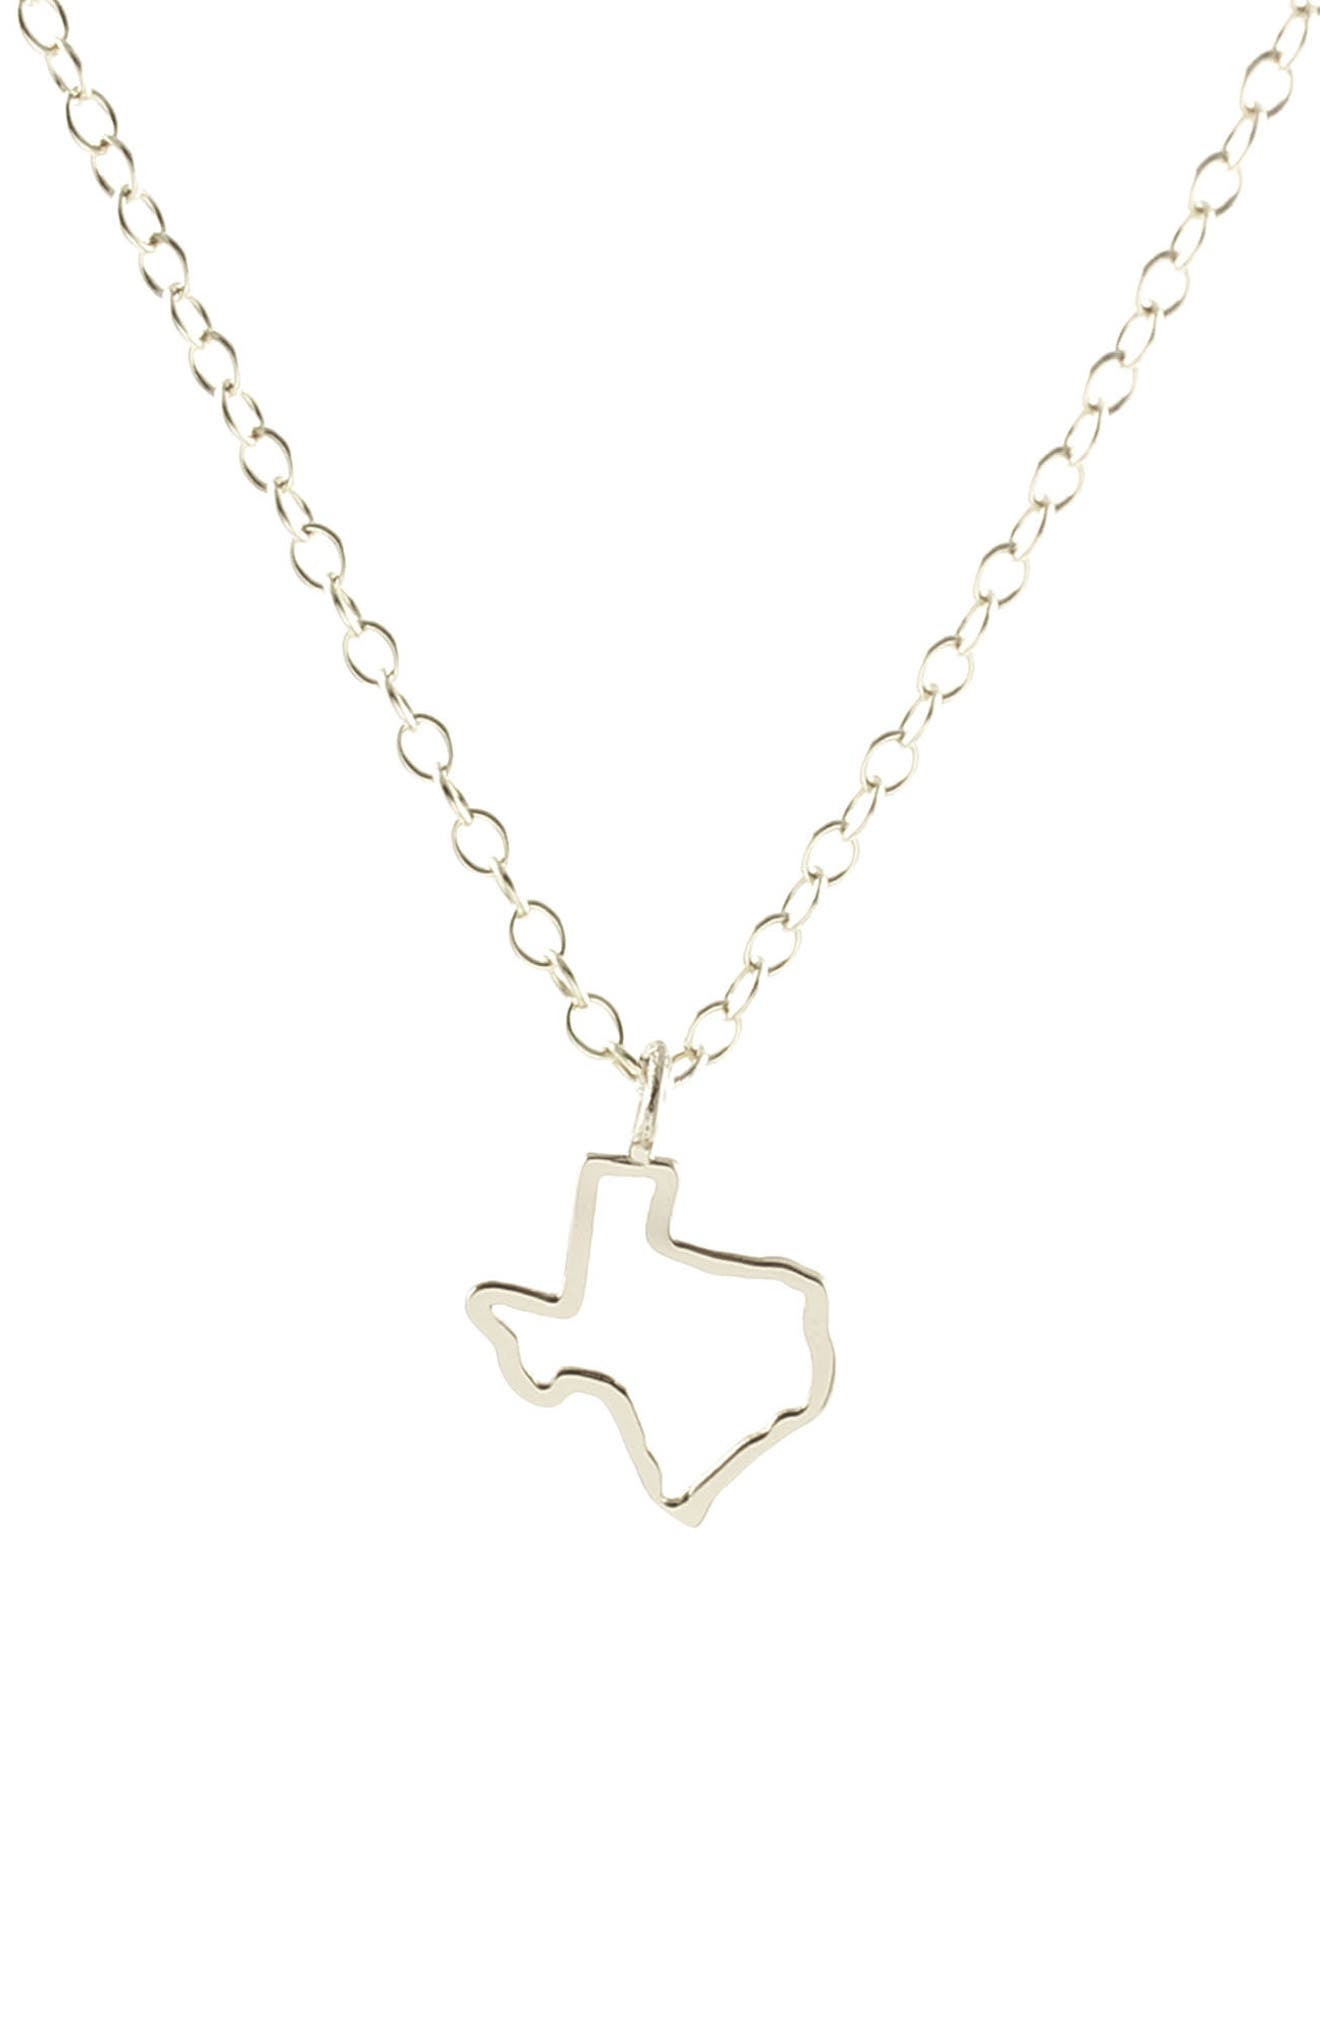 Texas Outline Charm Necklace,                             Main thumbnail 1, color,                             TEXAS - SILVER